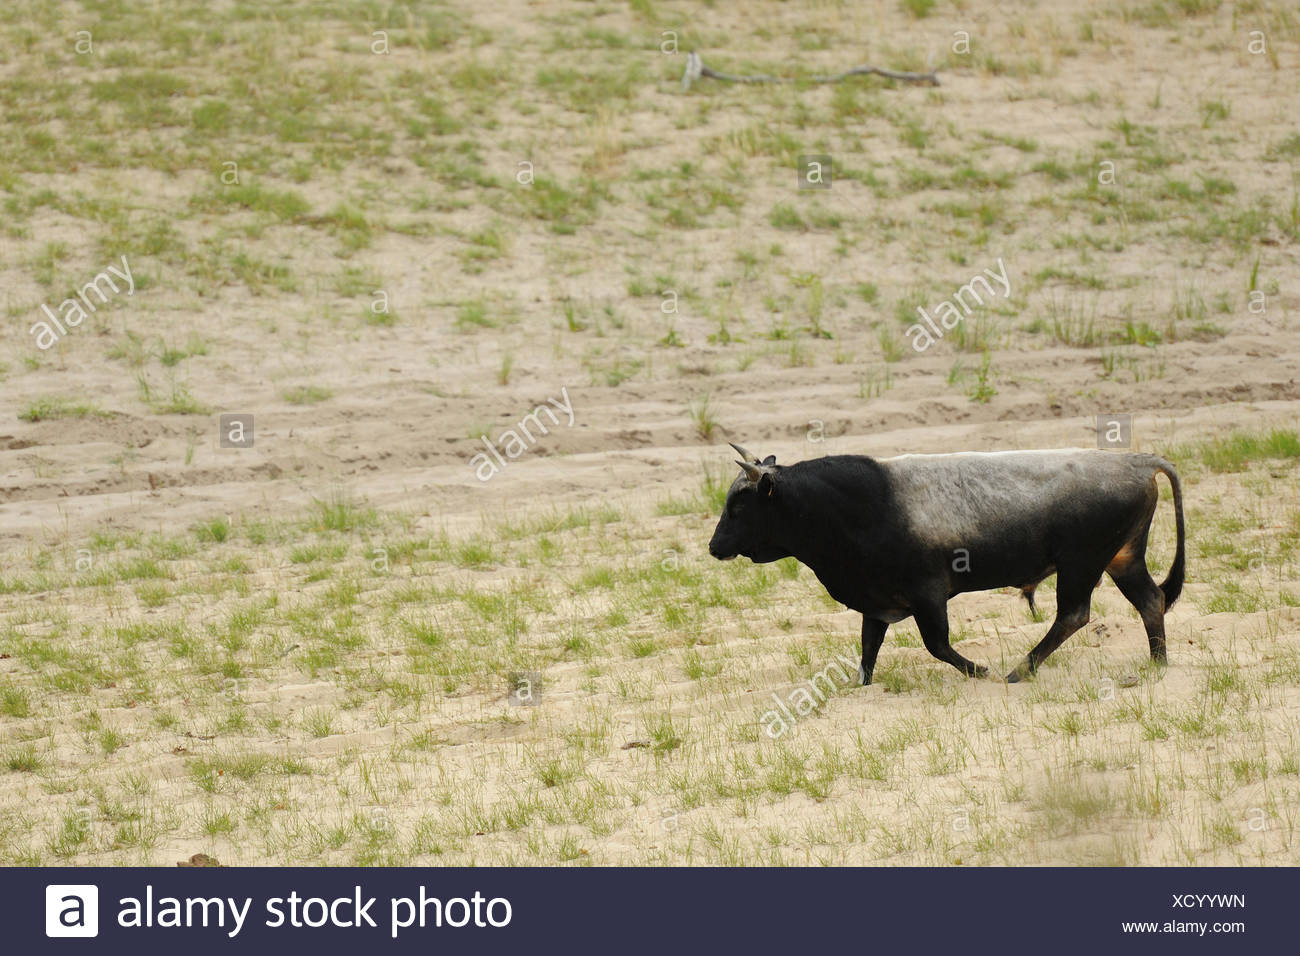 Primitive cattle breed, near relative to the auroch, Letea forest, Strictly protected nature reserve, Danube delta rewilding area, Romania - Stock Image